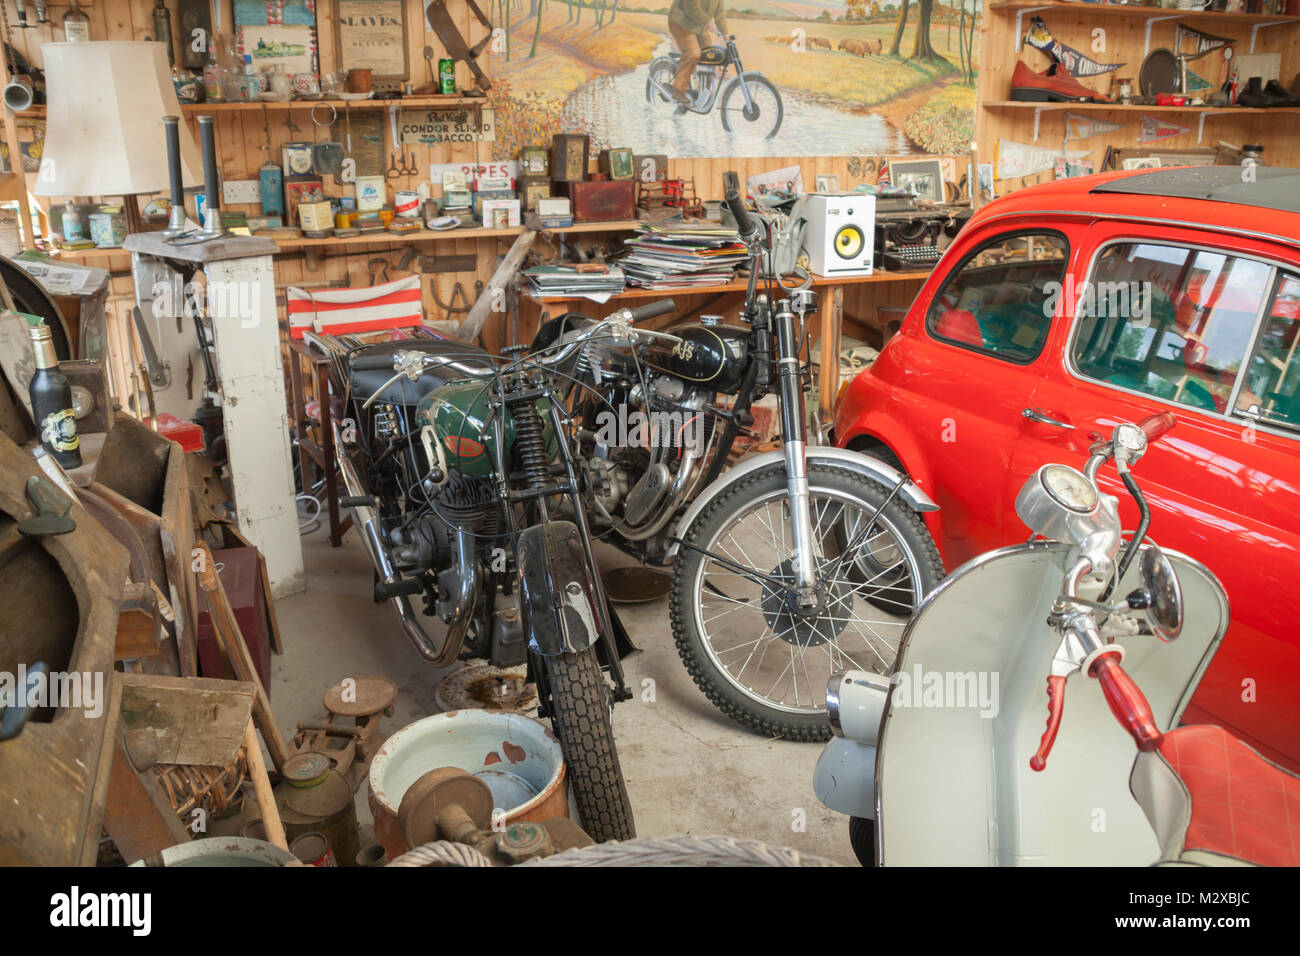 Vintage motorcycle collection in garage in Horncliffe, Berwick upon Tweed,  Northumberland, UK